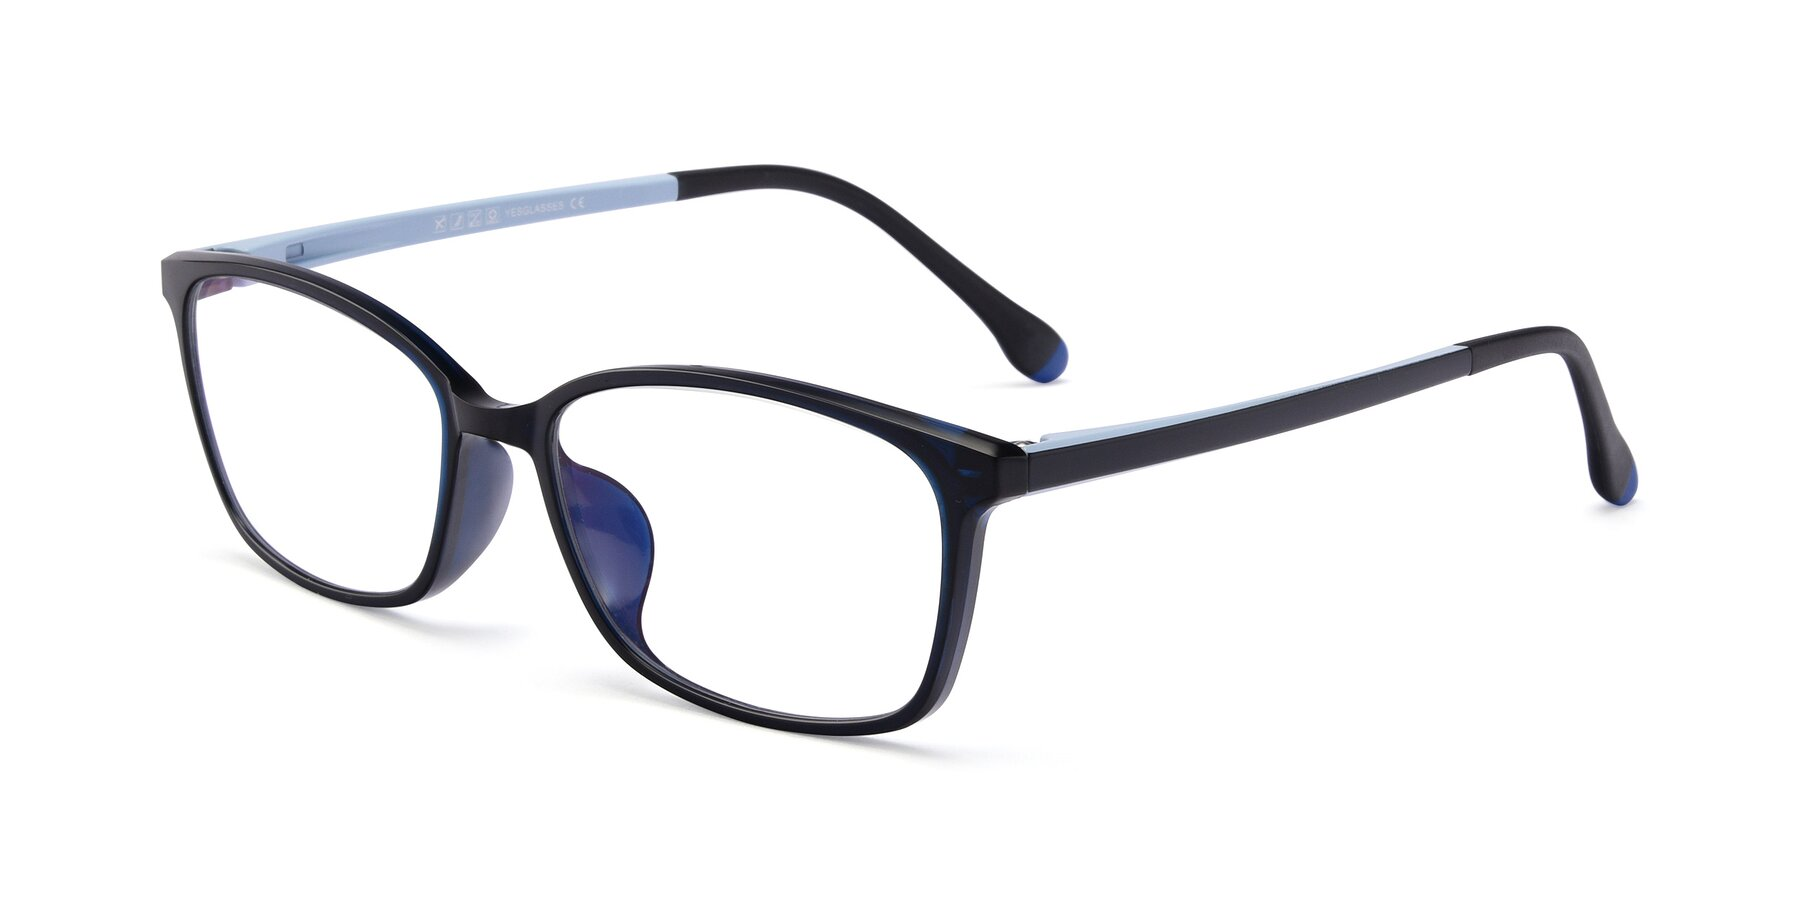 Angle of S7036 in Black-Blue with Clear Eyeglass Lenses